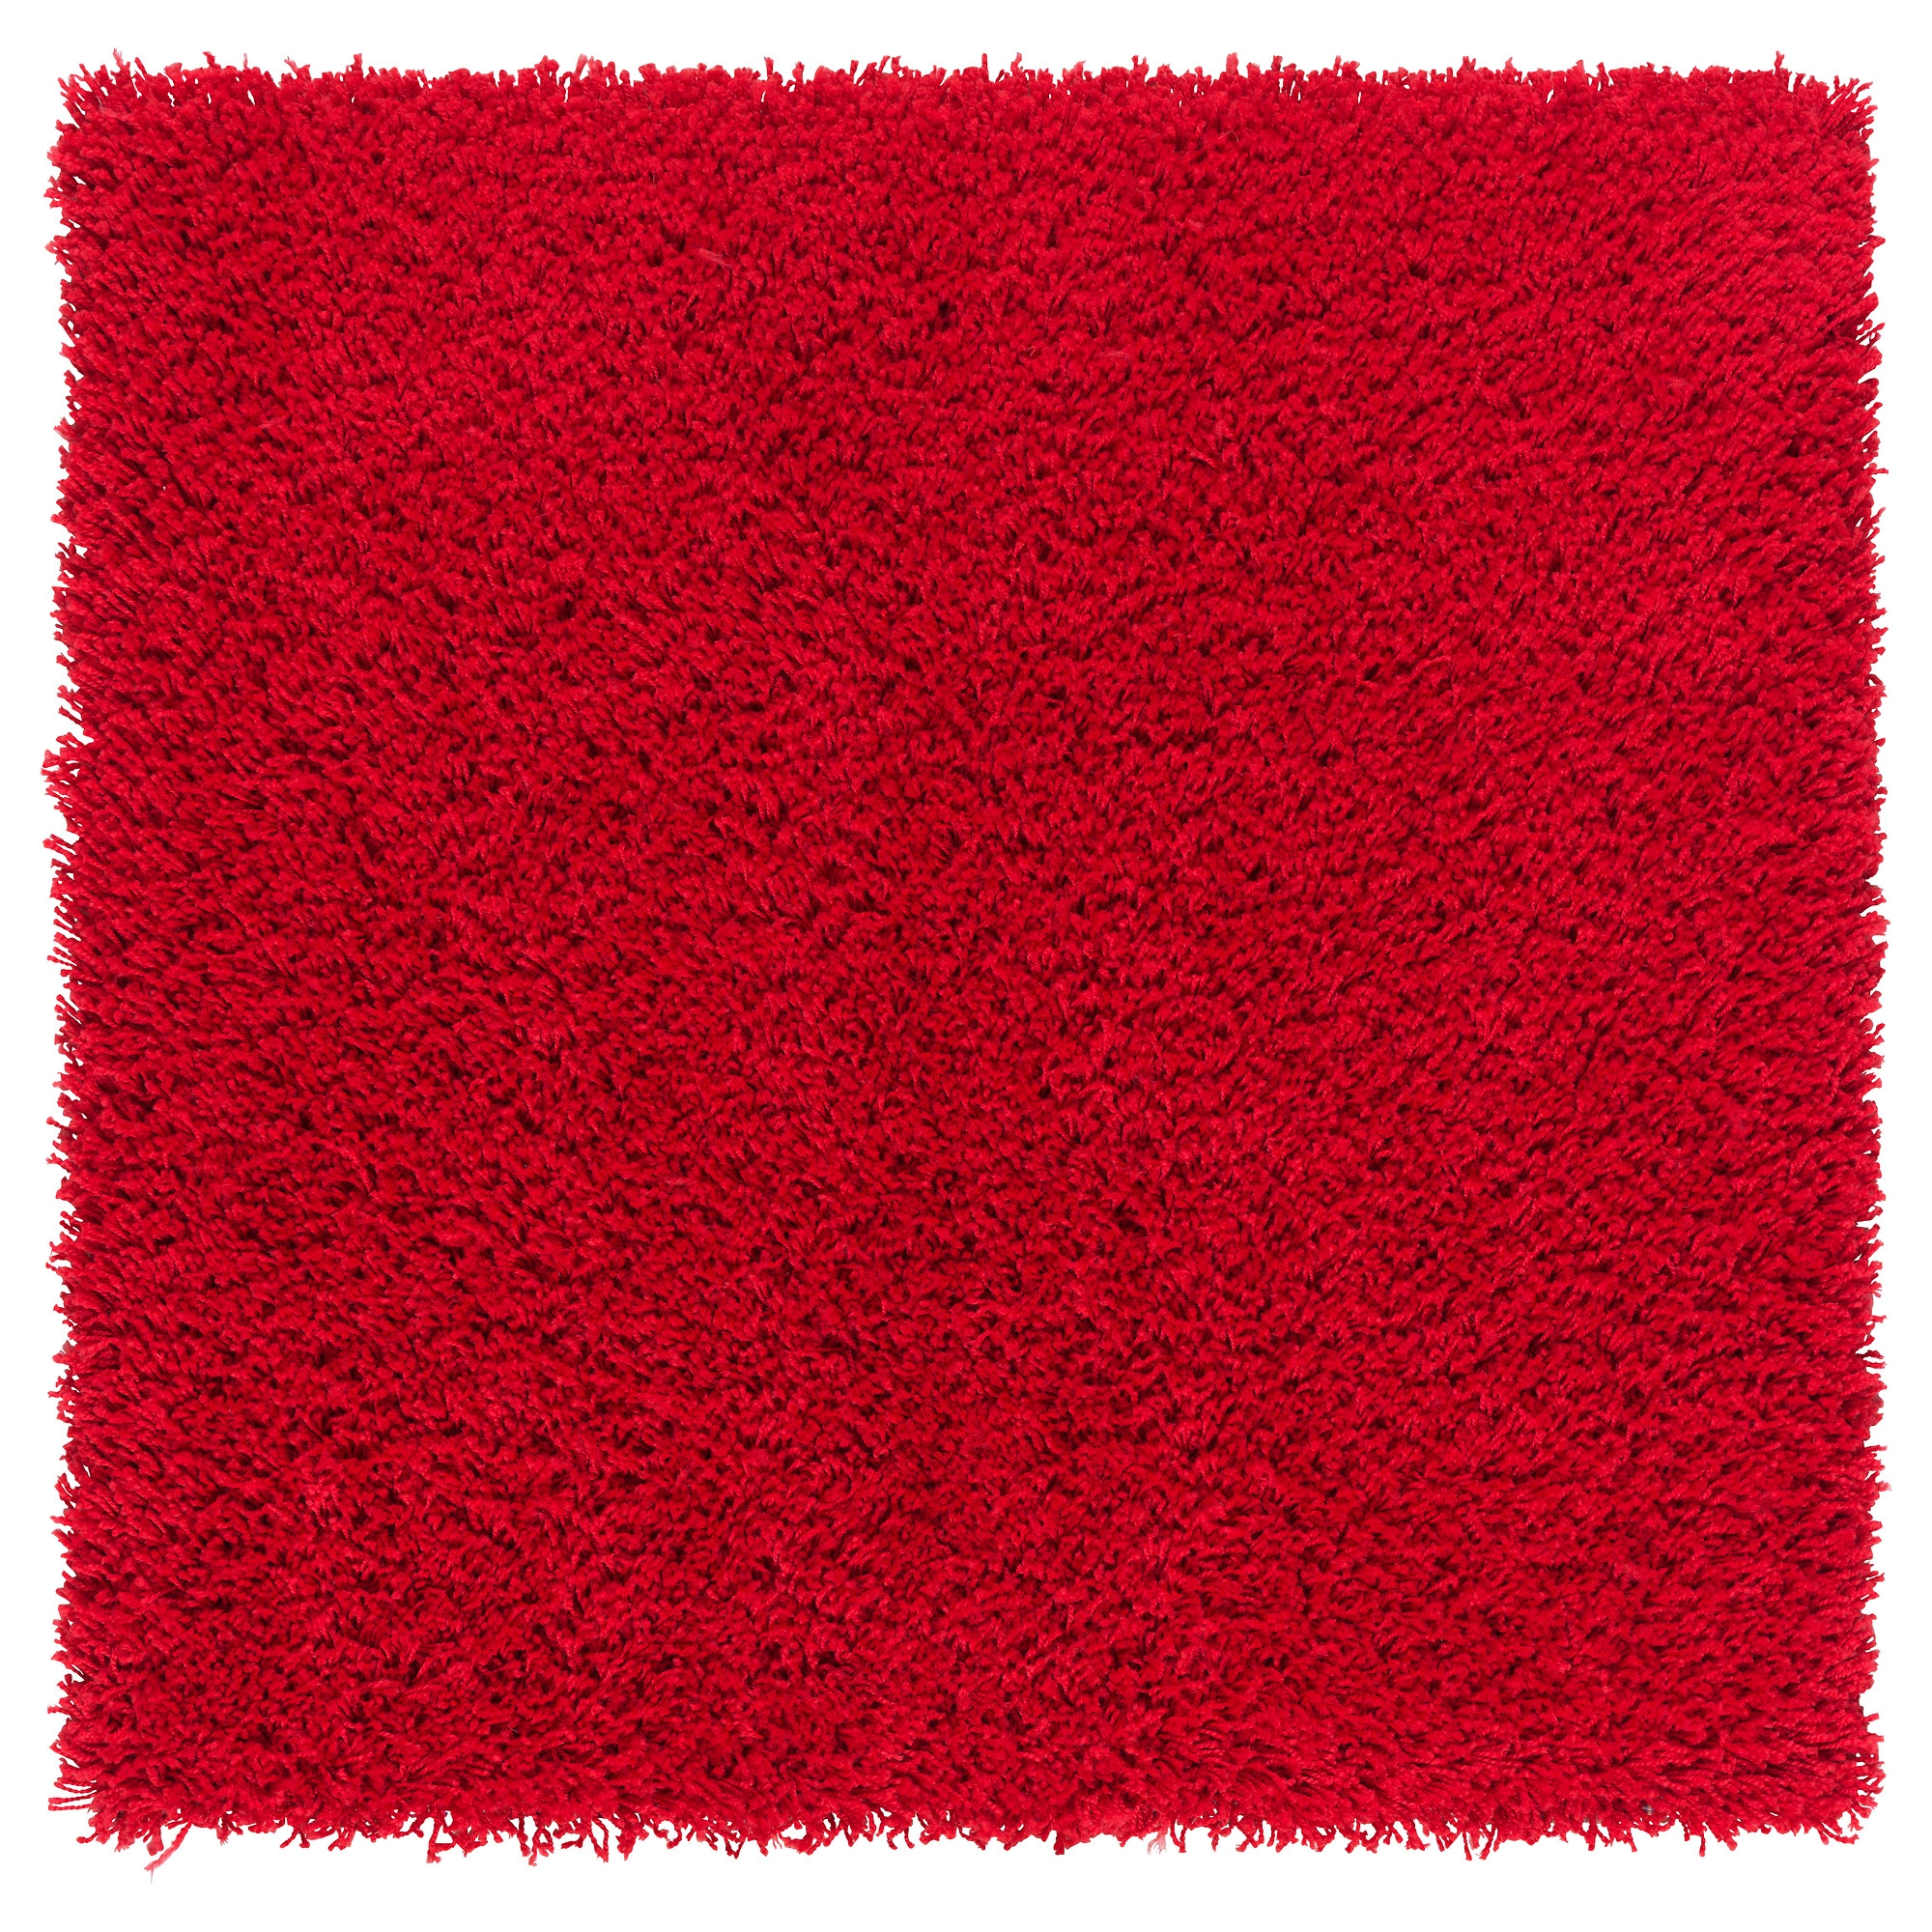 Small Red Rugs Roselawnlutheran Regarding Small Red Rugs (Image 13 of 15)